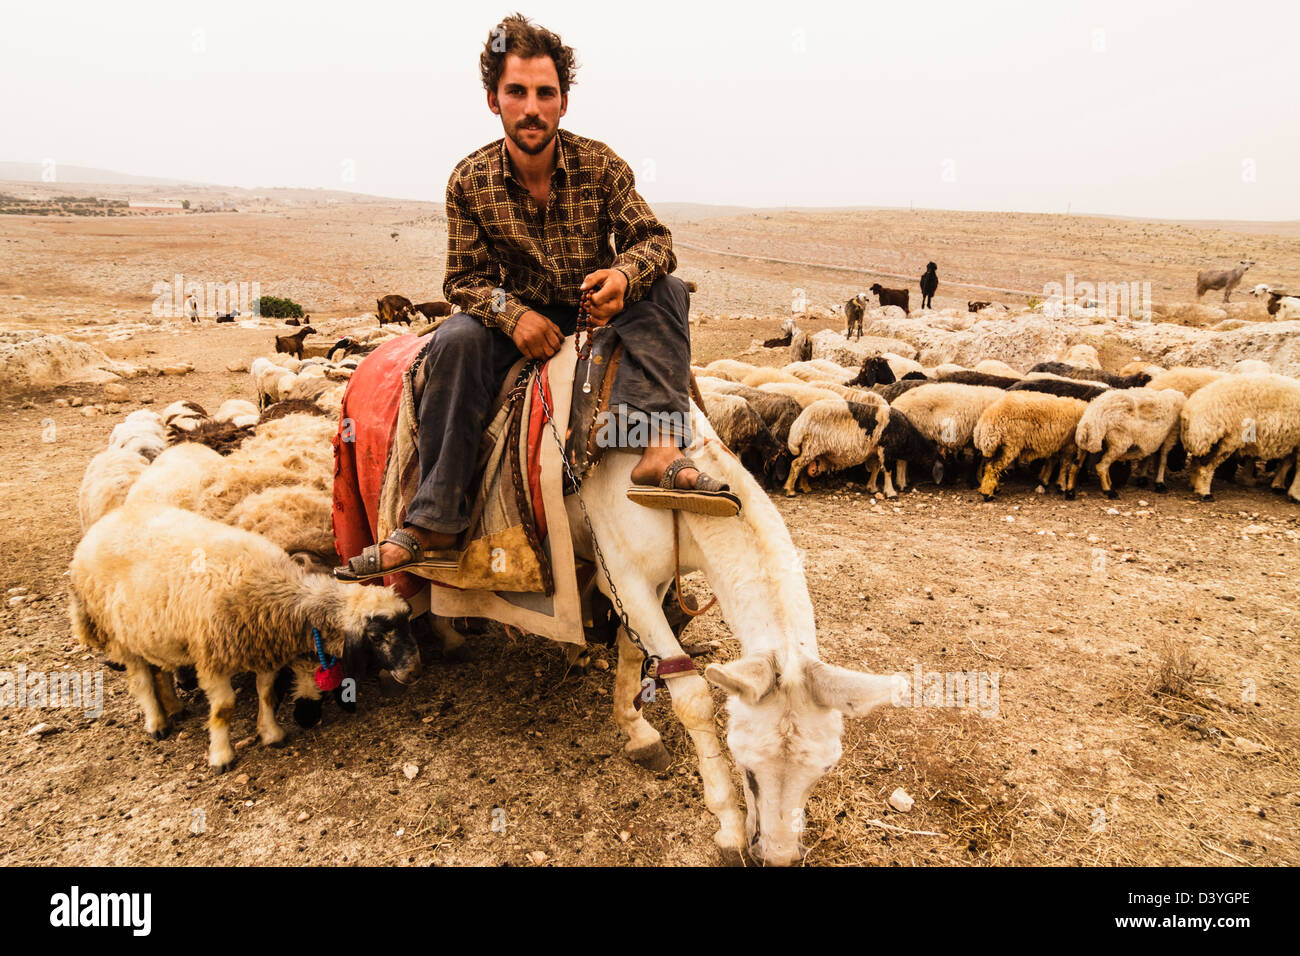 Shepherd with flock of sheep. Stock Photo